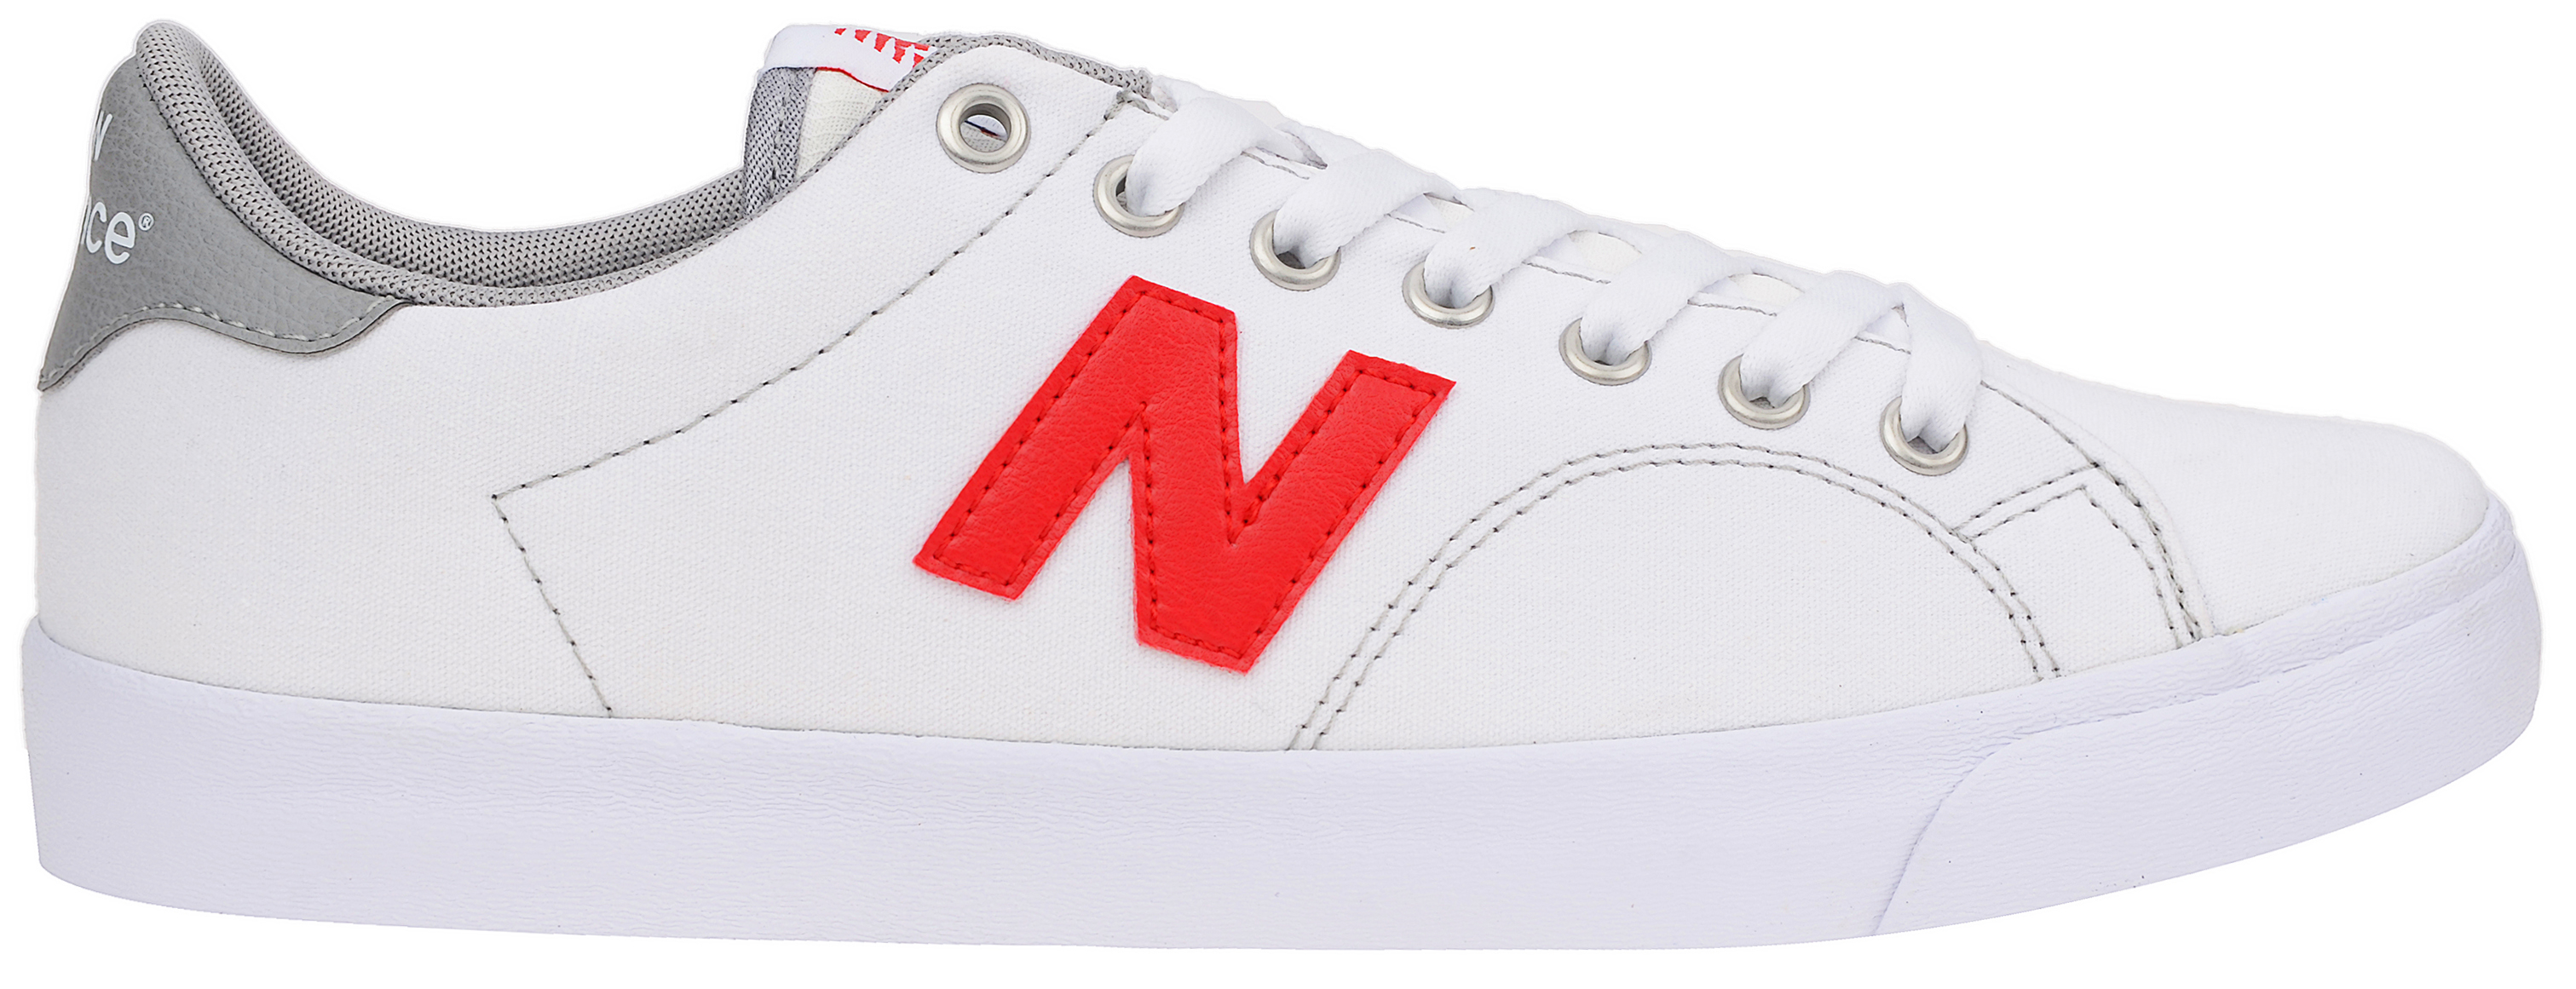 Кеды New Balance Numeric 210 AM210CWT 40 (7.5) 25.5 см (192662599920) c61a68d9dda5a